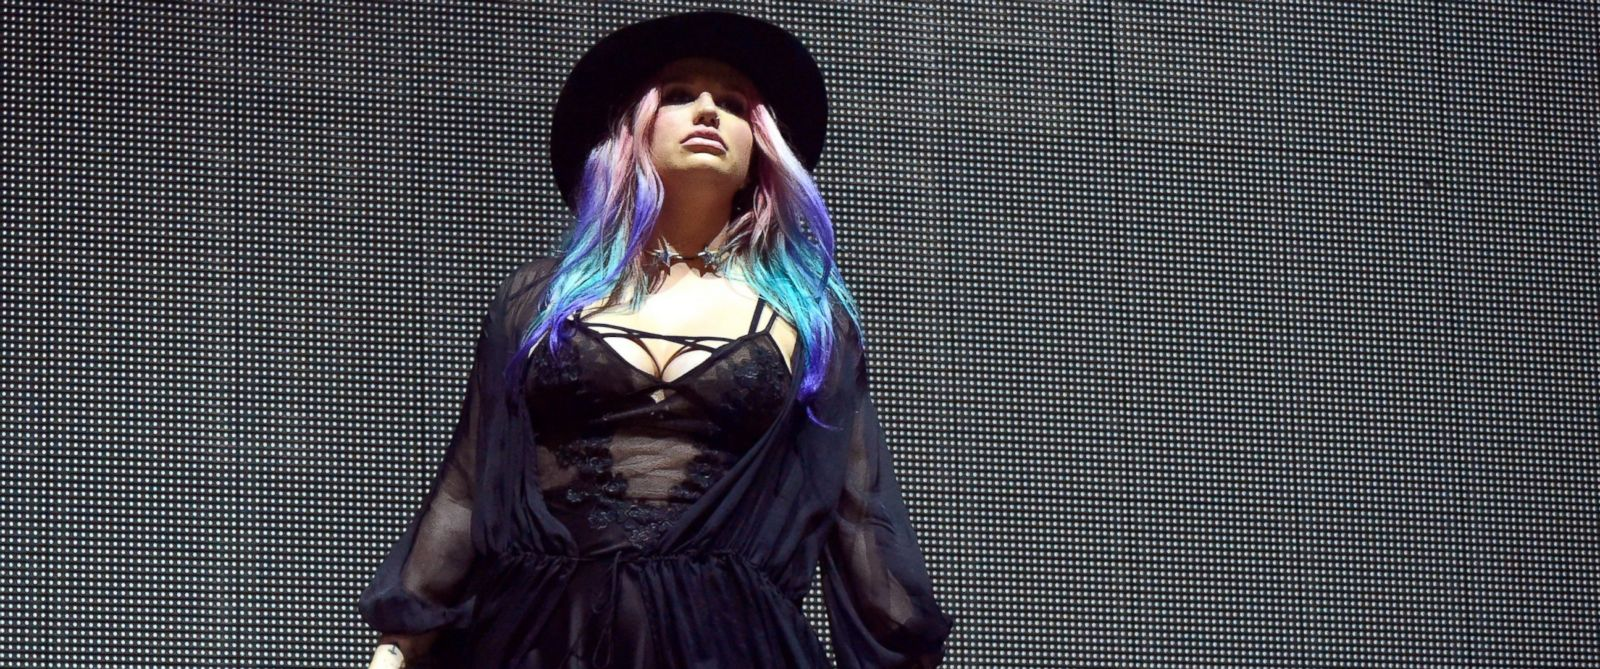 Kesha Releases New Single With Zedd